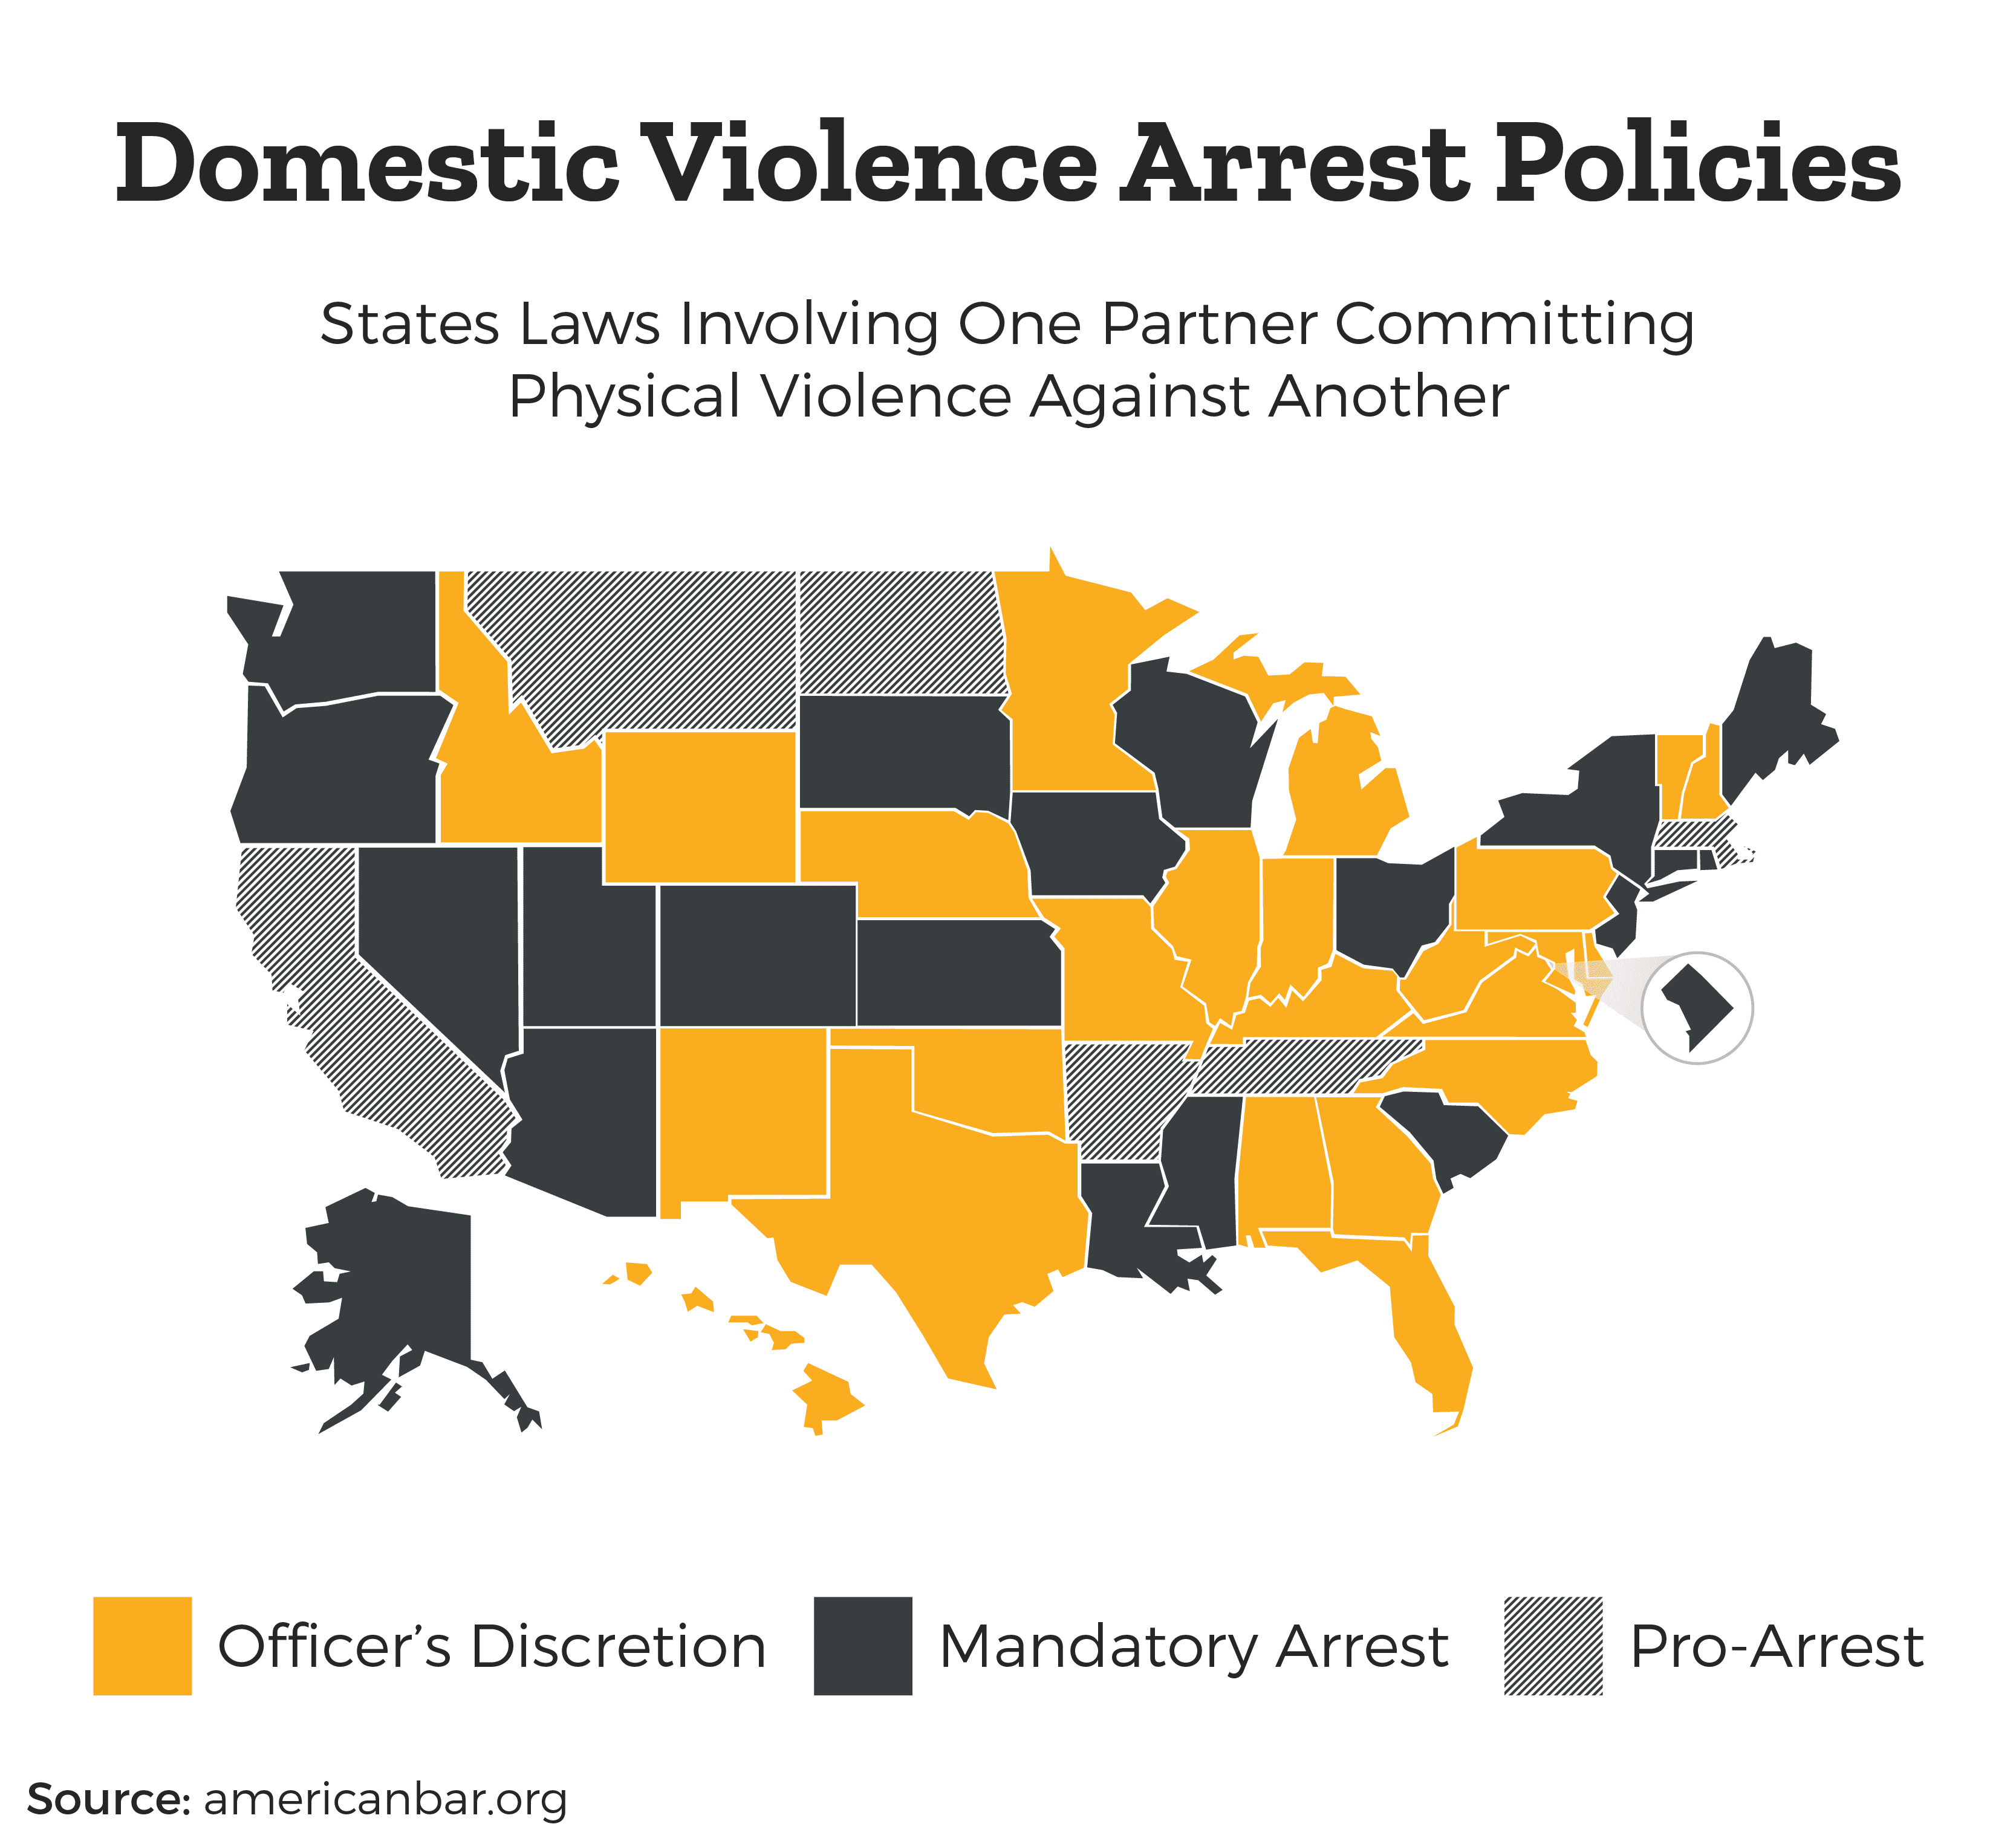 Domestic Violence Arrest Policies - a colored coded map of state laws involving one partner committing physical violence against another. There are three categories, officer's discretion, mandatory arrest, and pro-arrest.